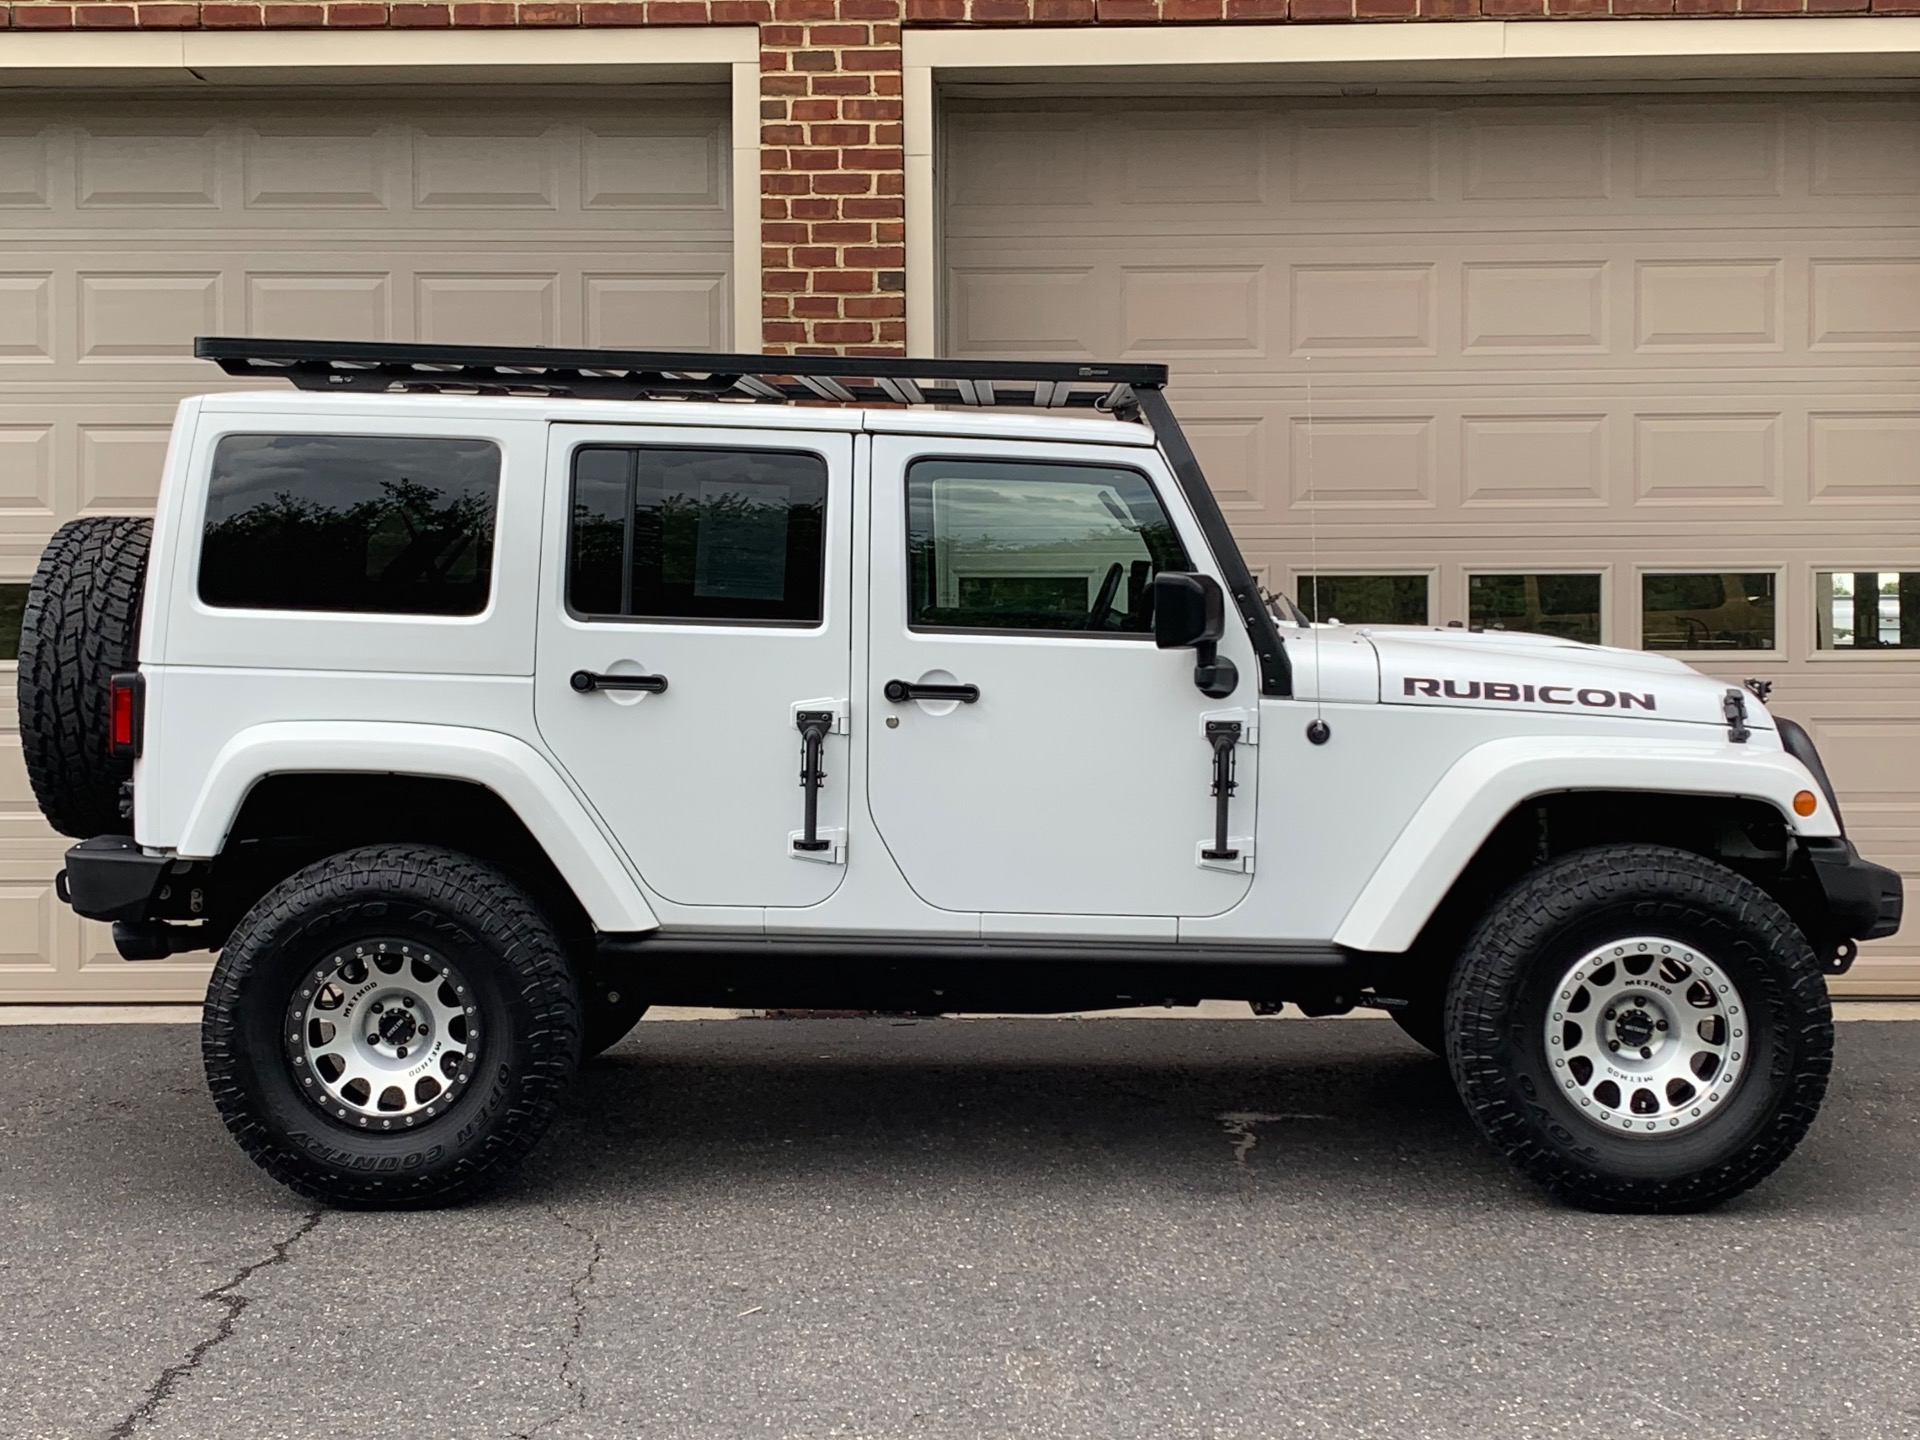 Used-2016-Jeep-Wrangler-Unlimited-Rubicon-Hard-Rock